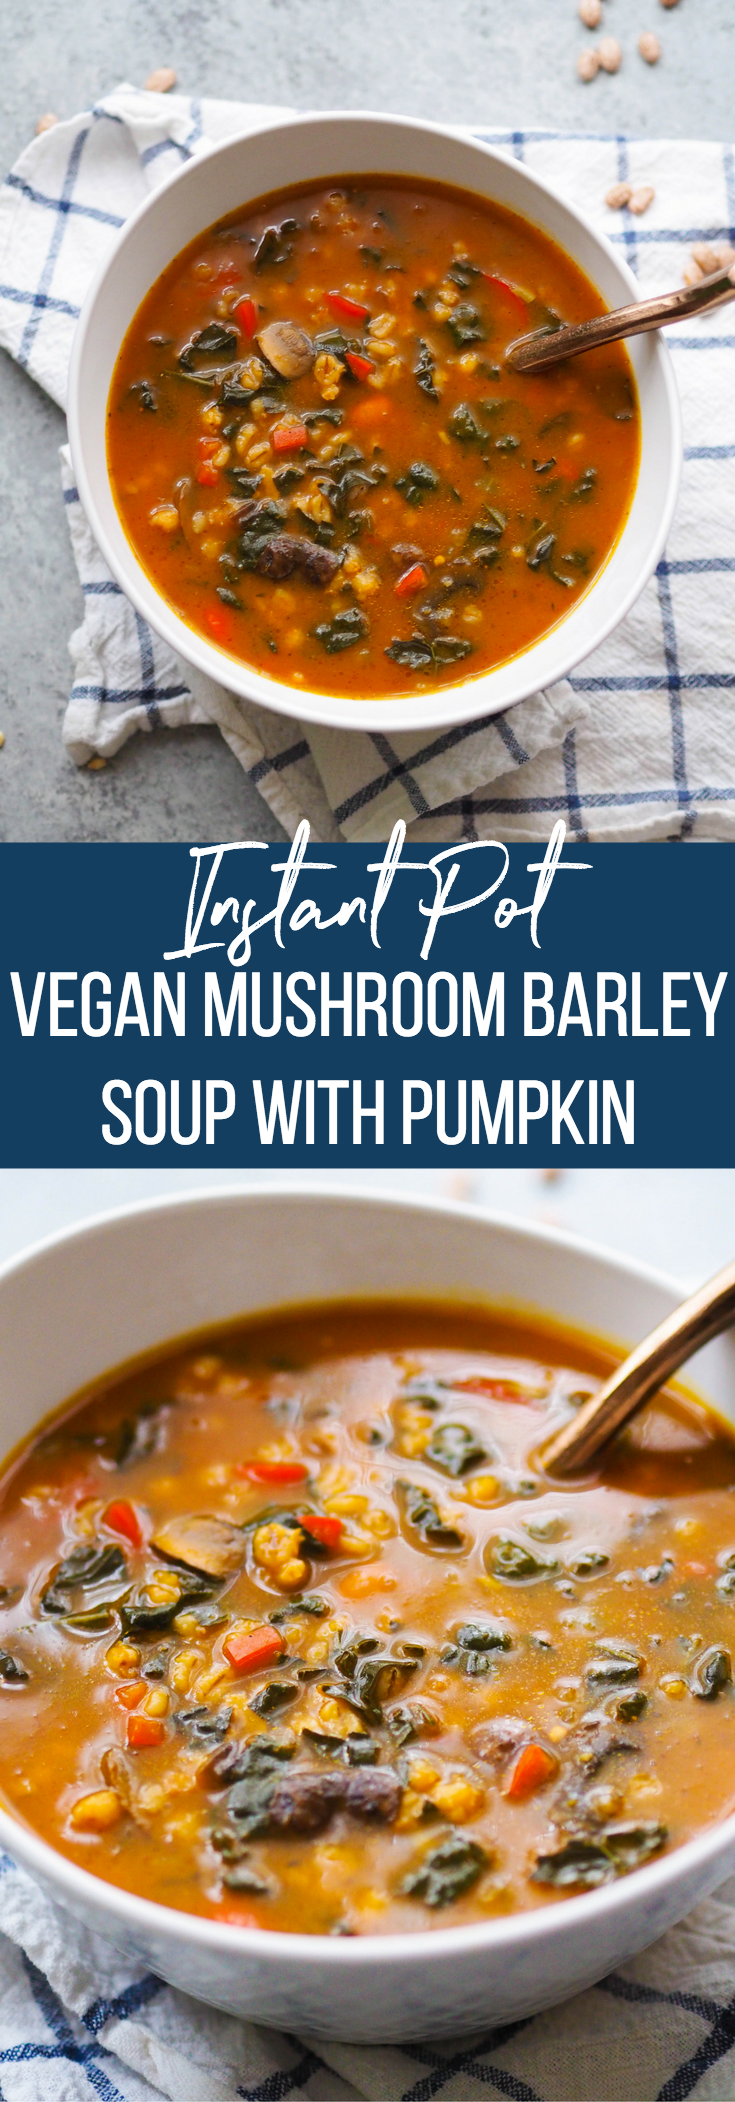 Instant-Pot-Vegan-Mushroom-Barley-Soup-With-Pumpkin.png